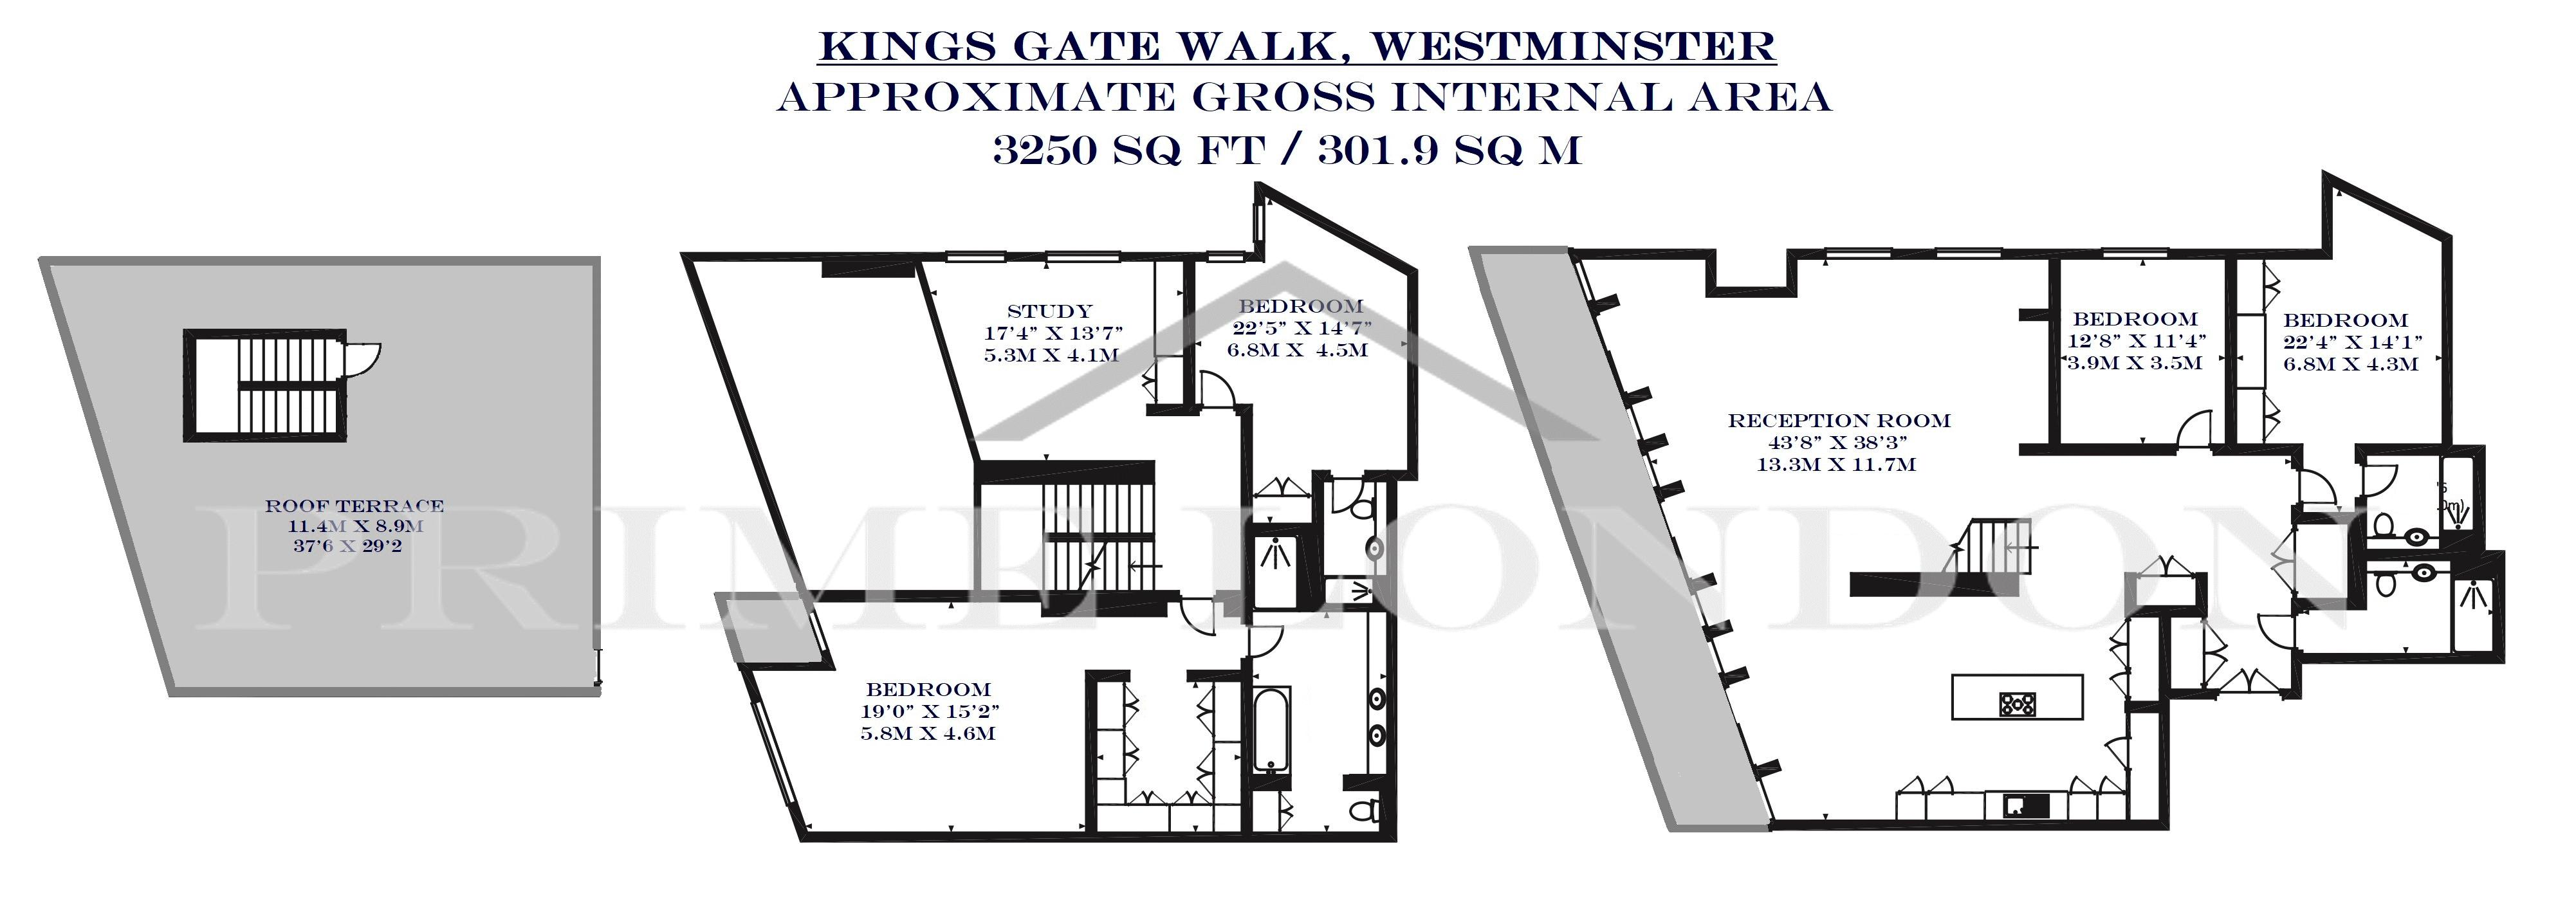 Kings Gate Walk